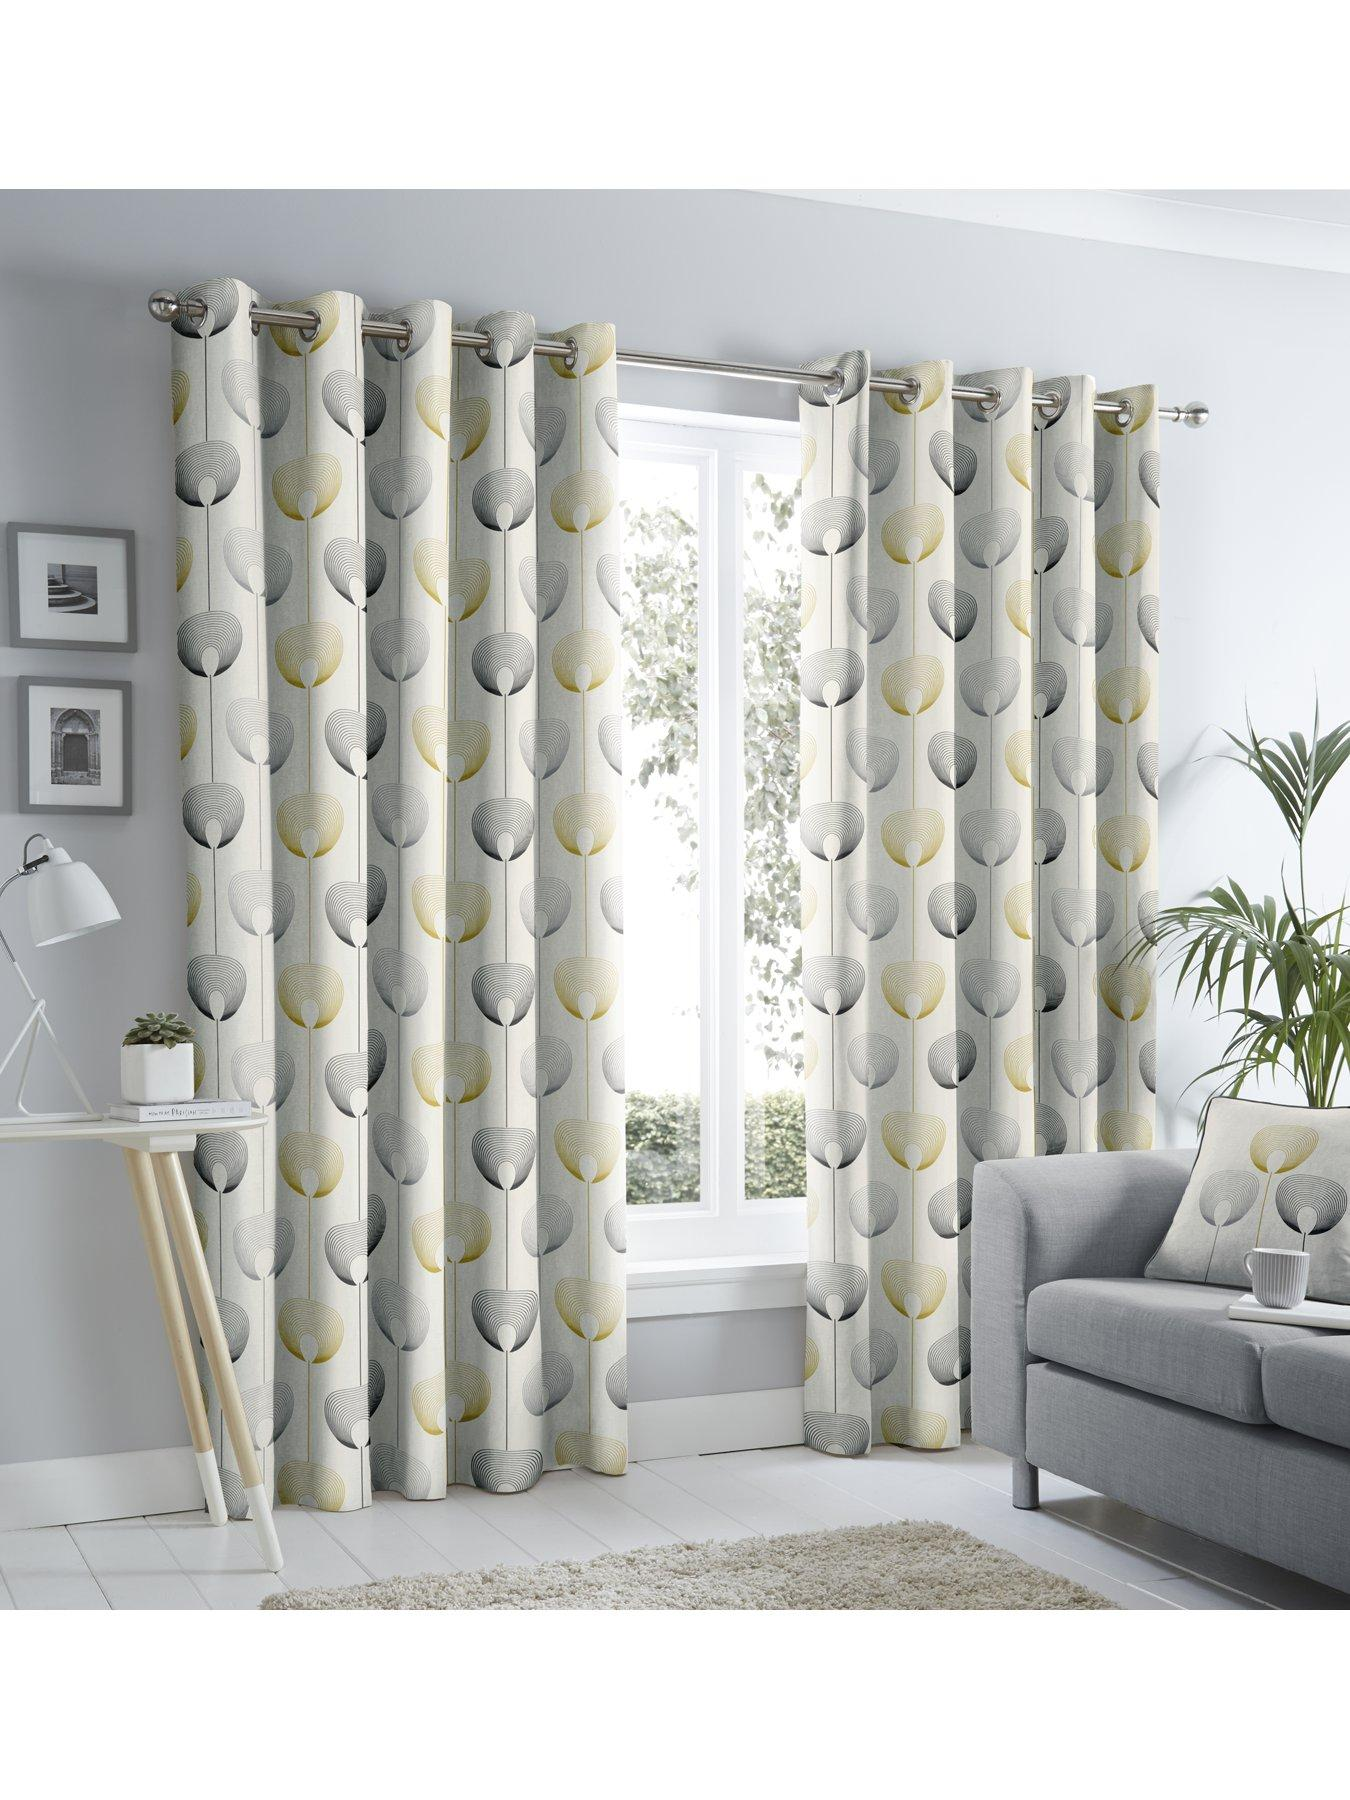 Delta MODERN Scandi Lined EYELET Ring Top Curtains Ready Made 3 COLOURS